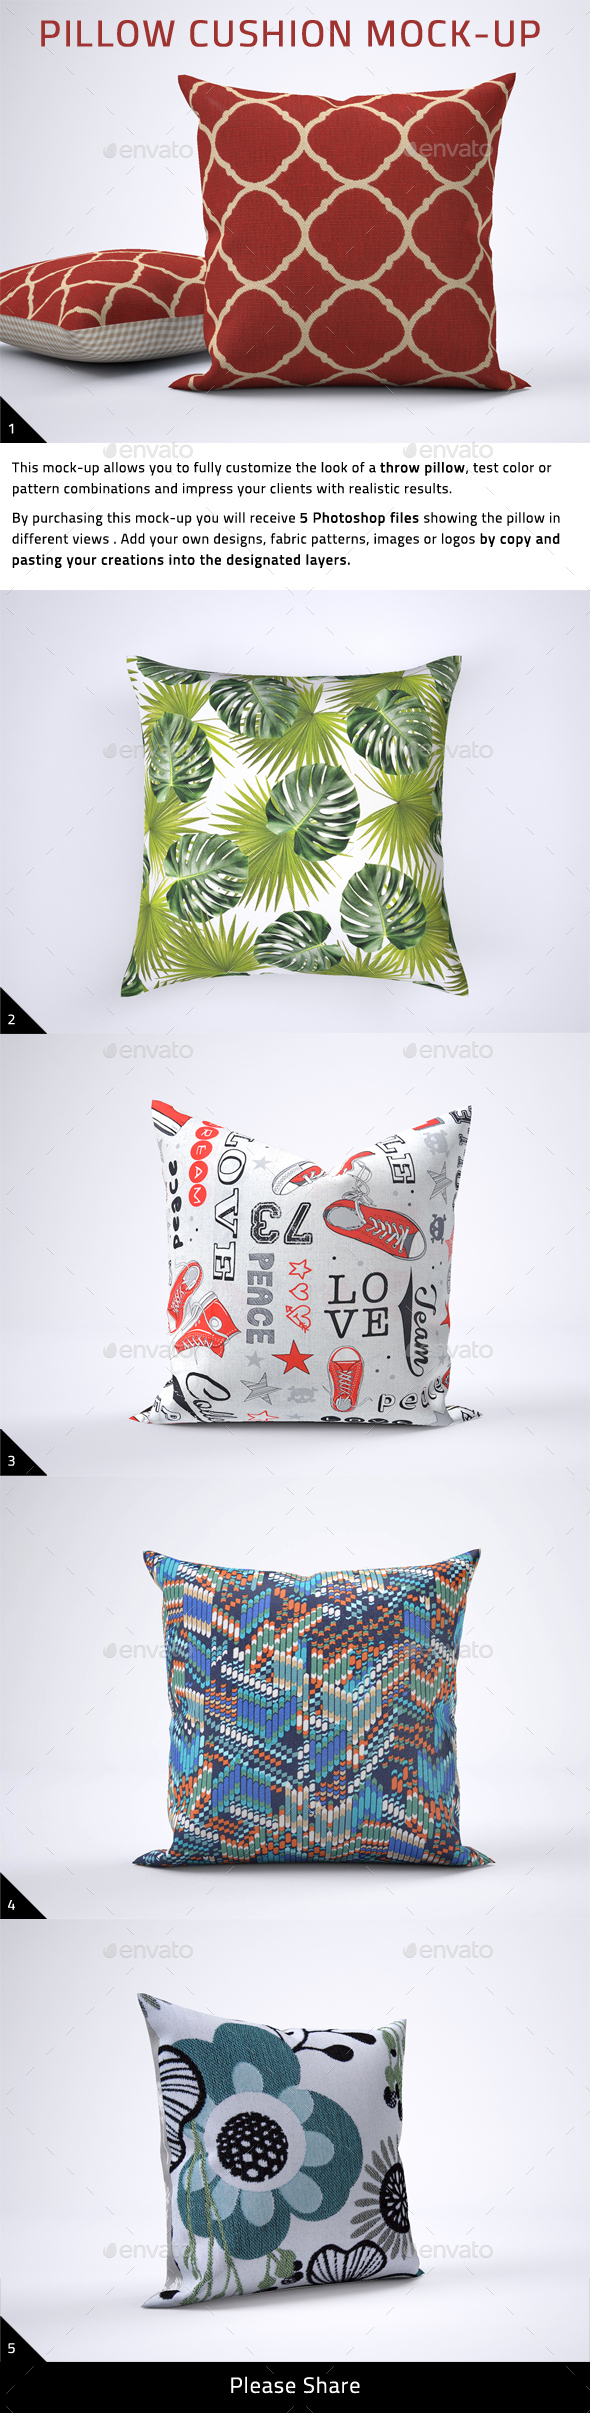 Pillow Cushion Mock-Up - Product Mock-Ups Graphics